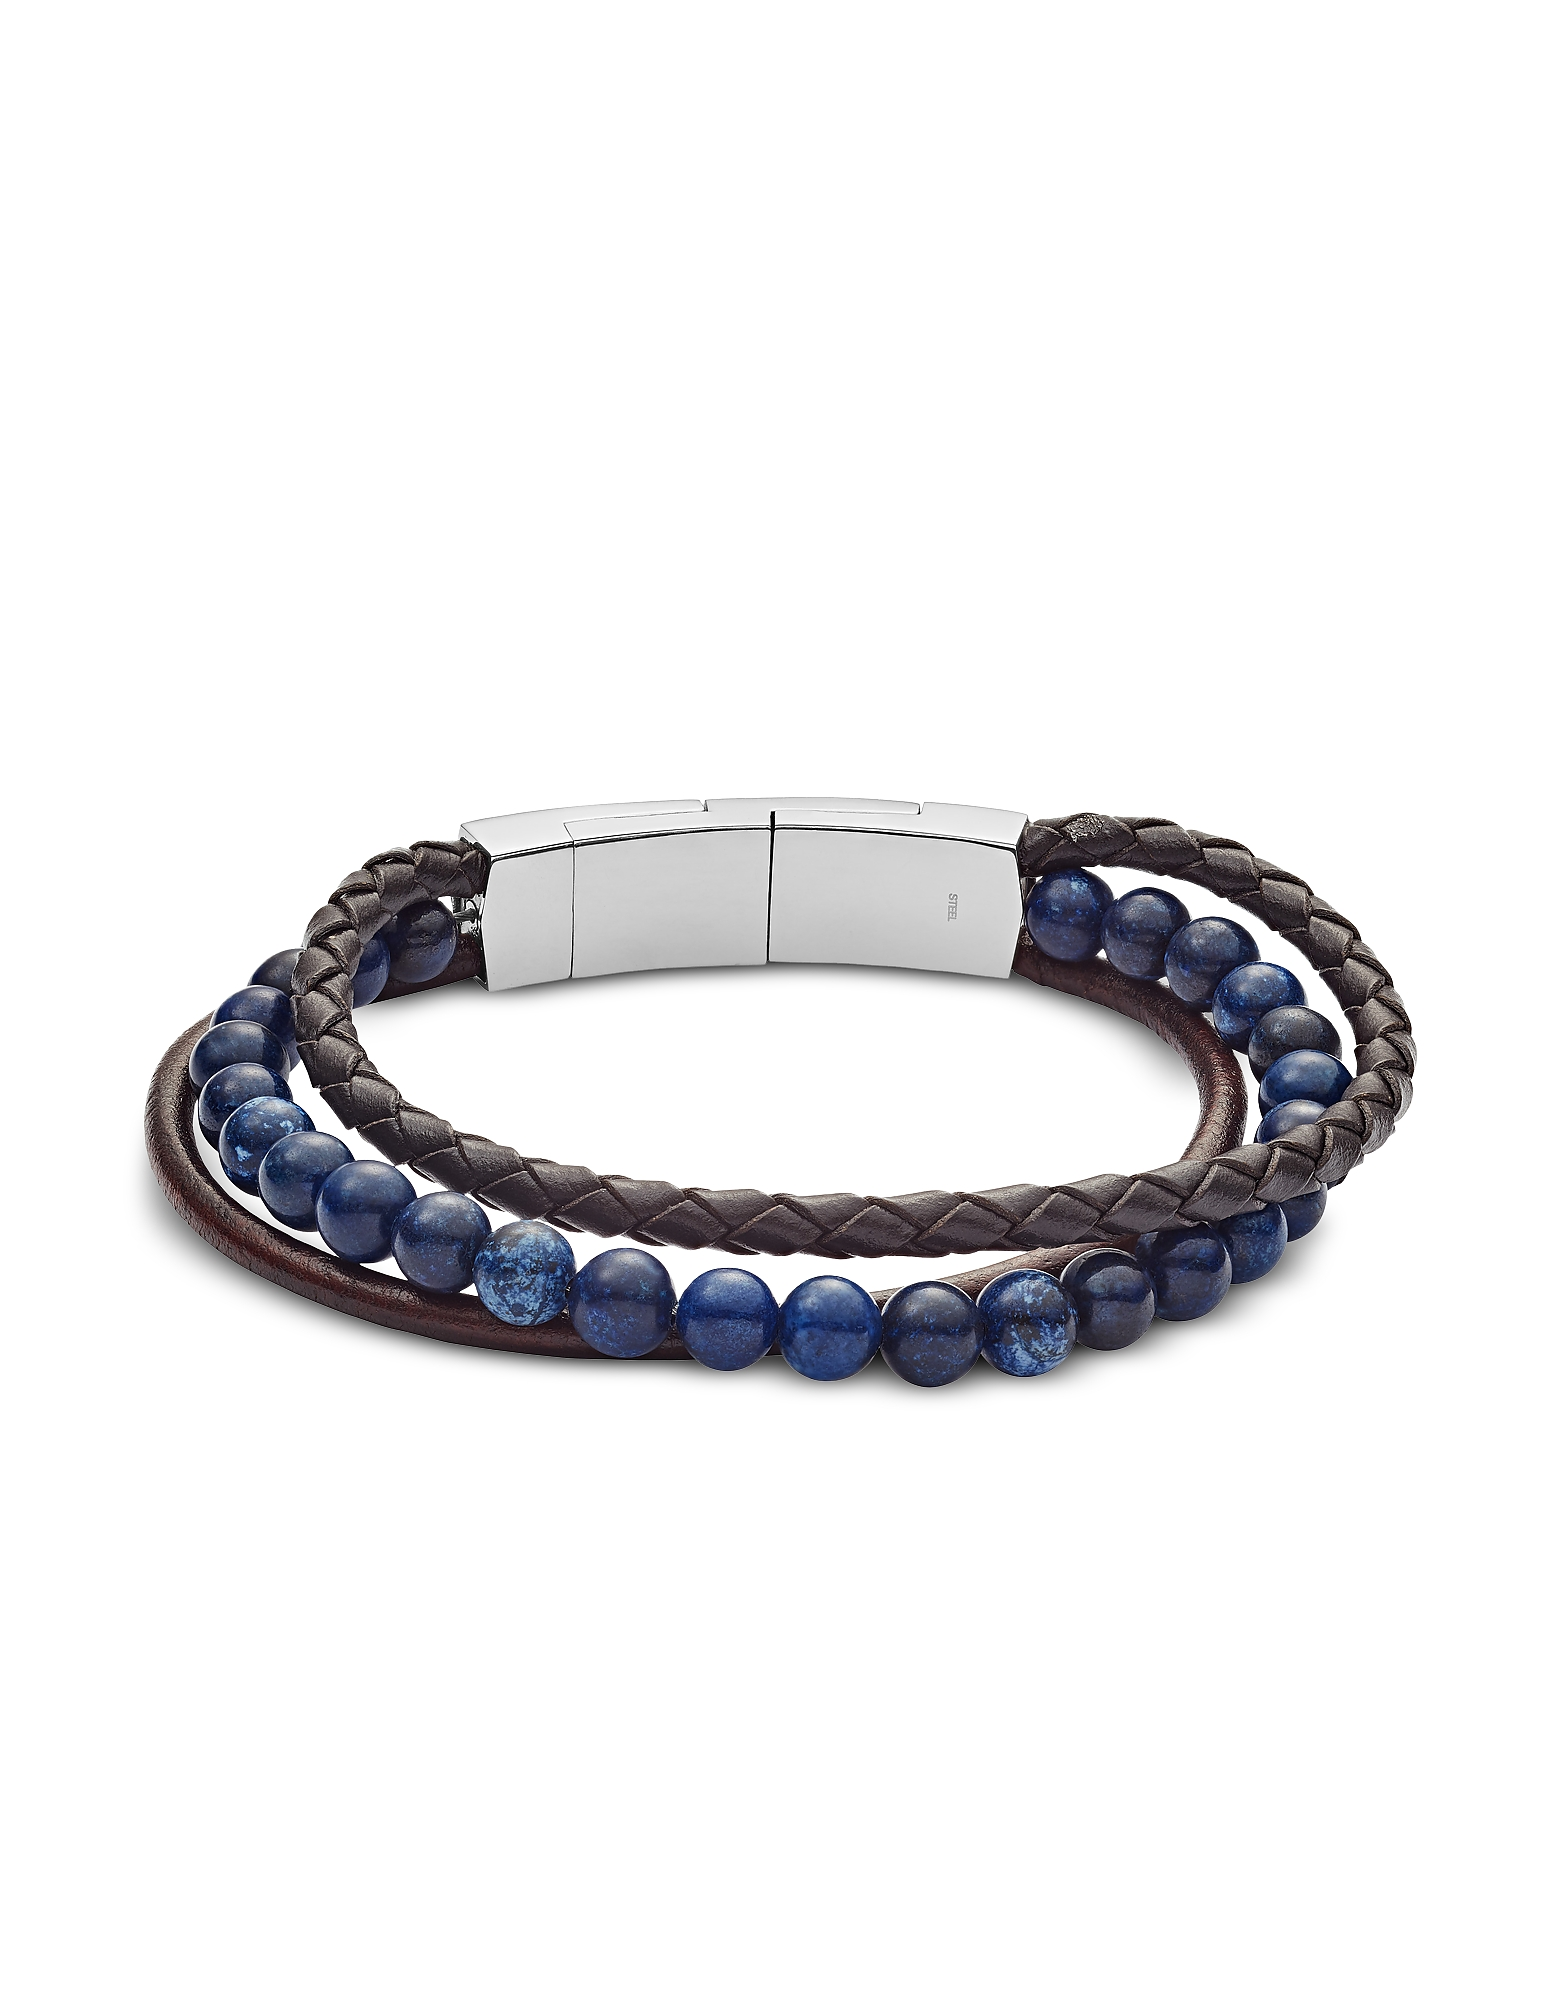 Men's Vintage Casual Multi-Strand Leather and Blue Sodalite Bead Bracelet